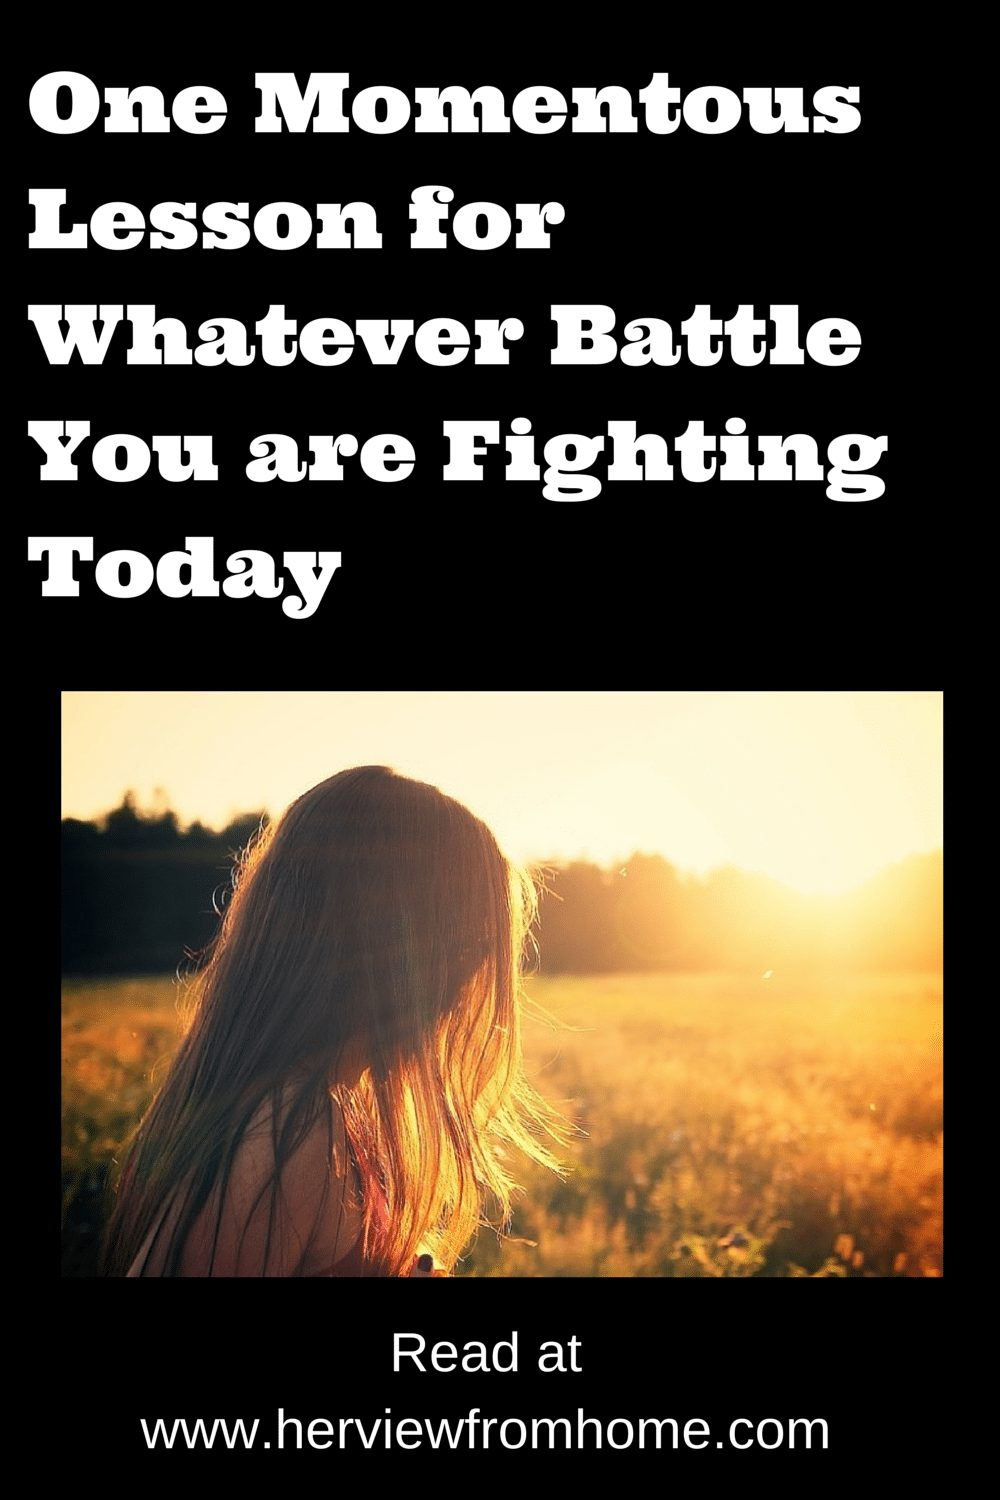 One Momentous Lesson for Whatever Battle You are Fighting